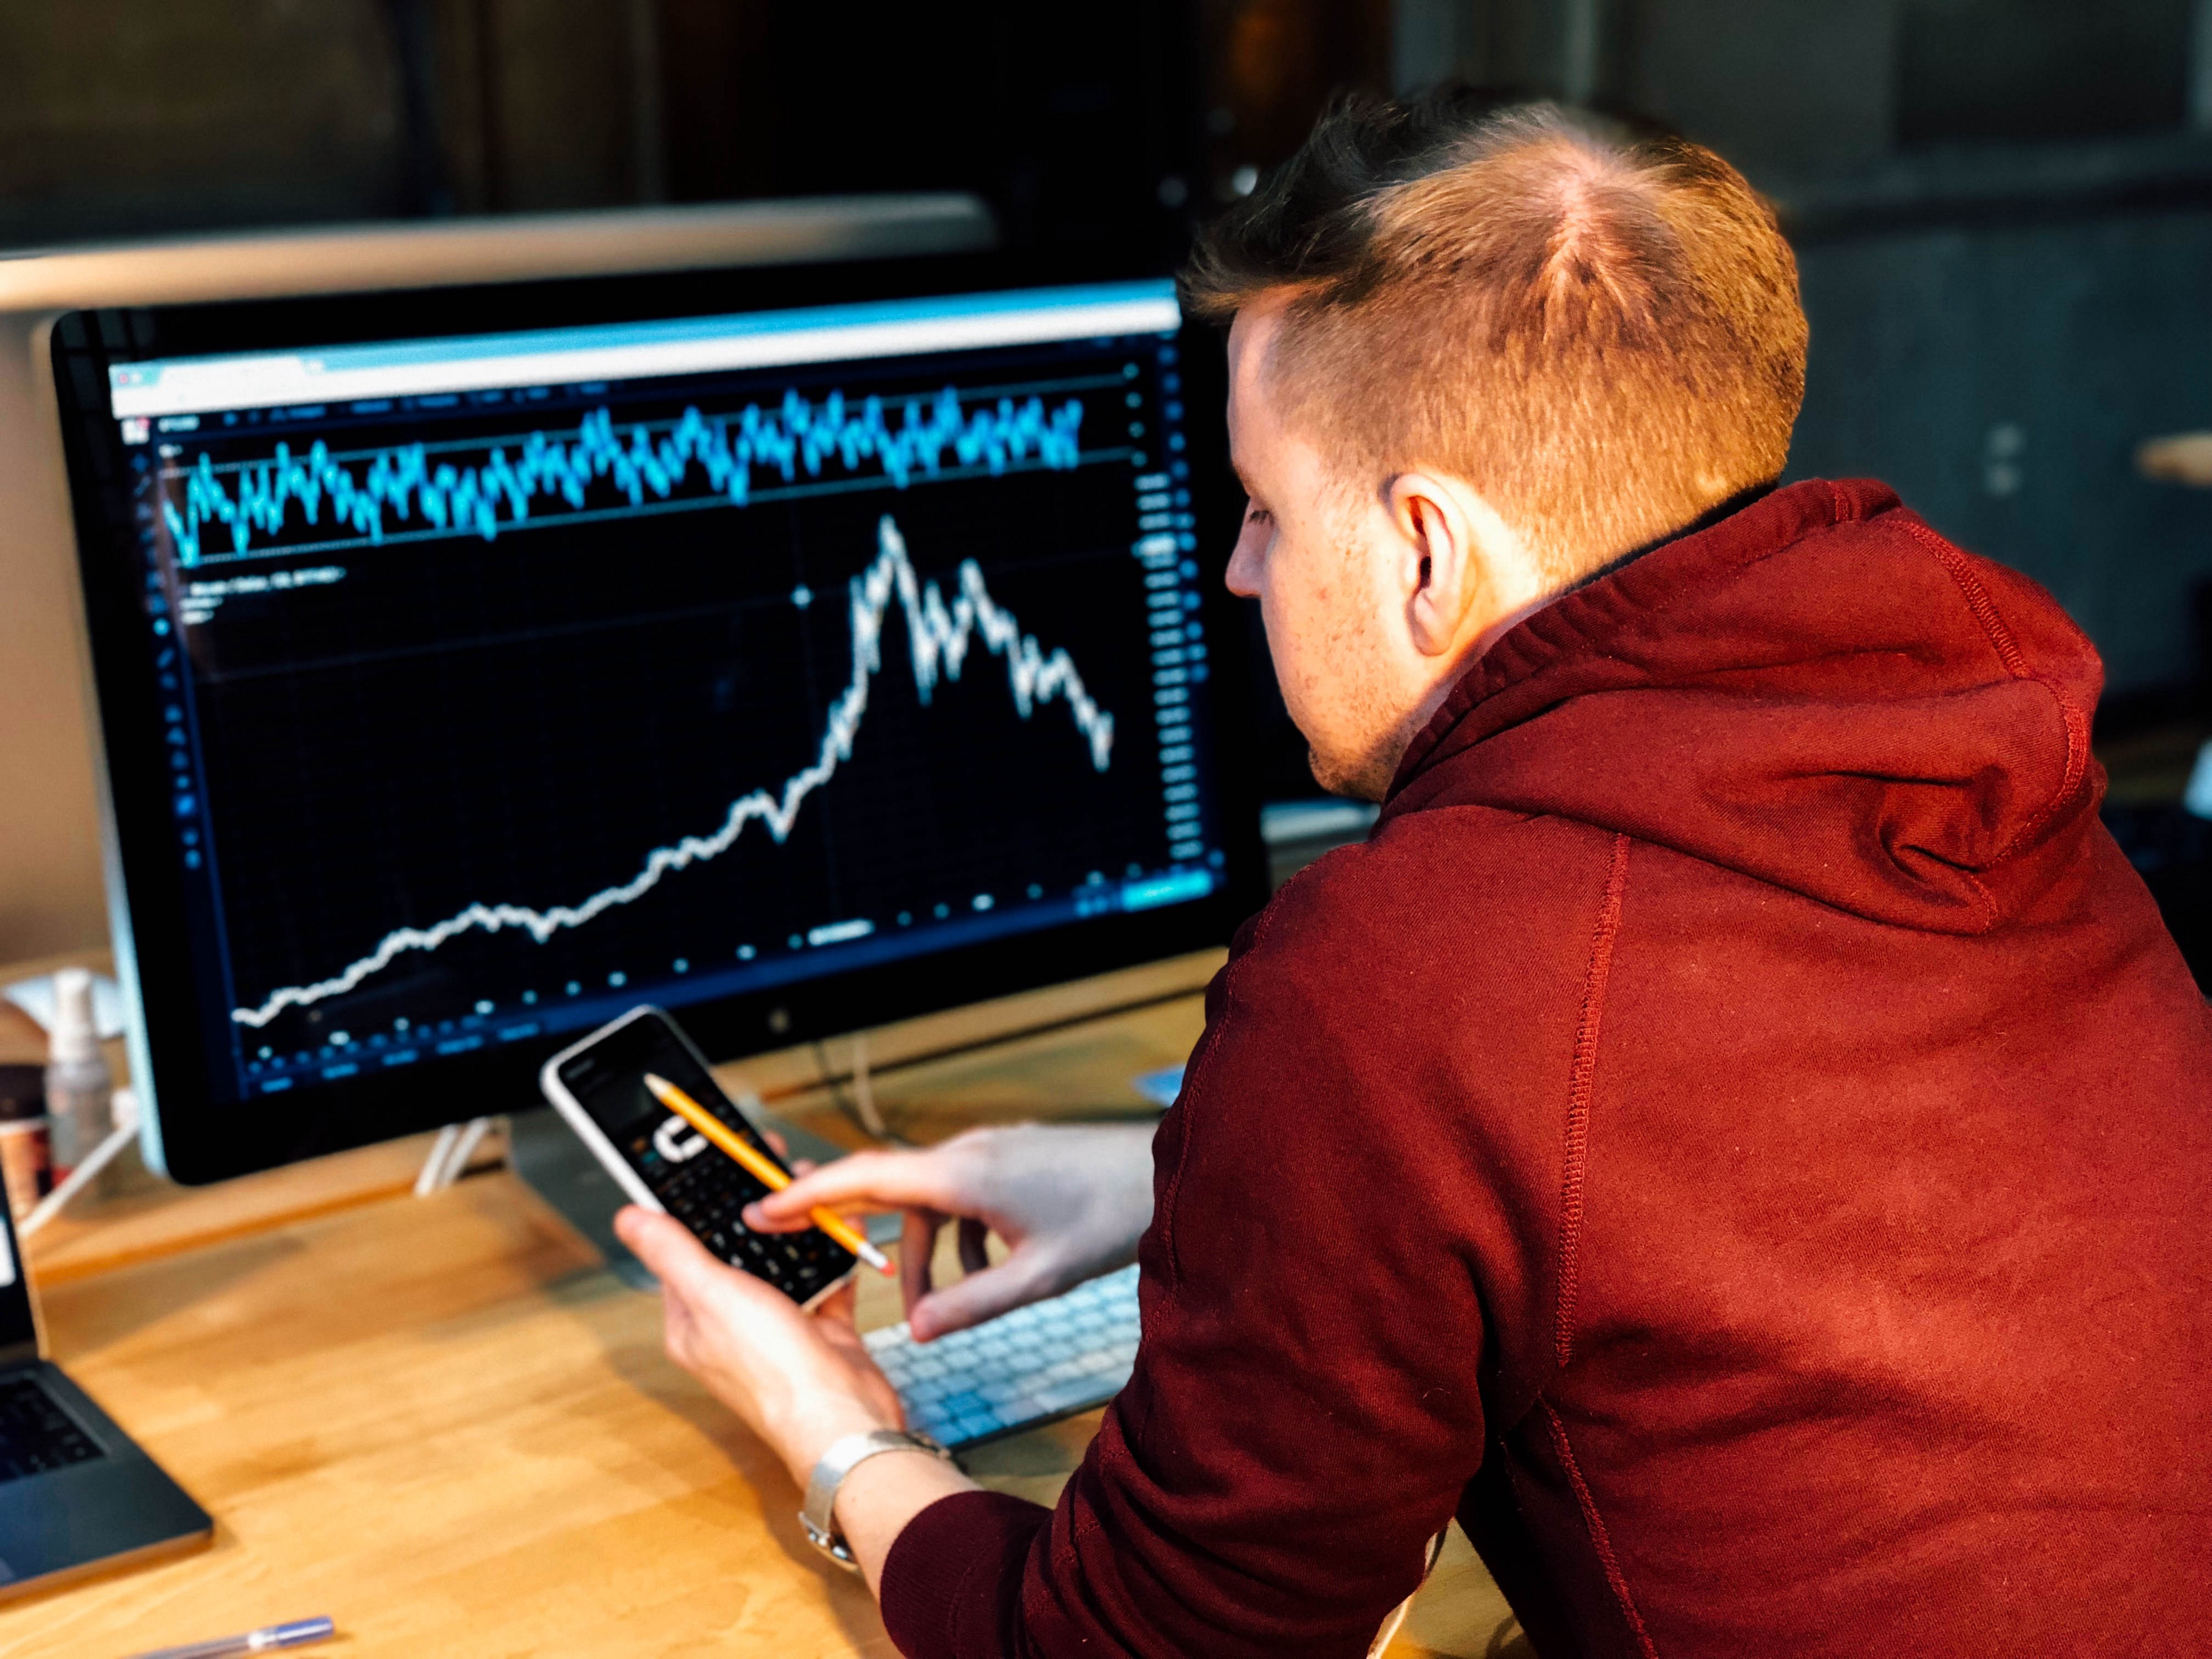 Worker sitting in front of a computer with graphs and other data on it.